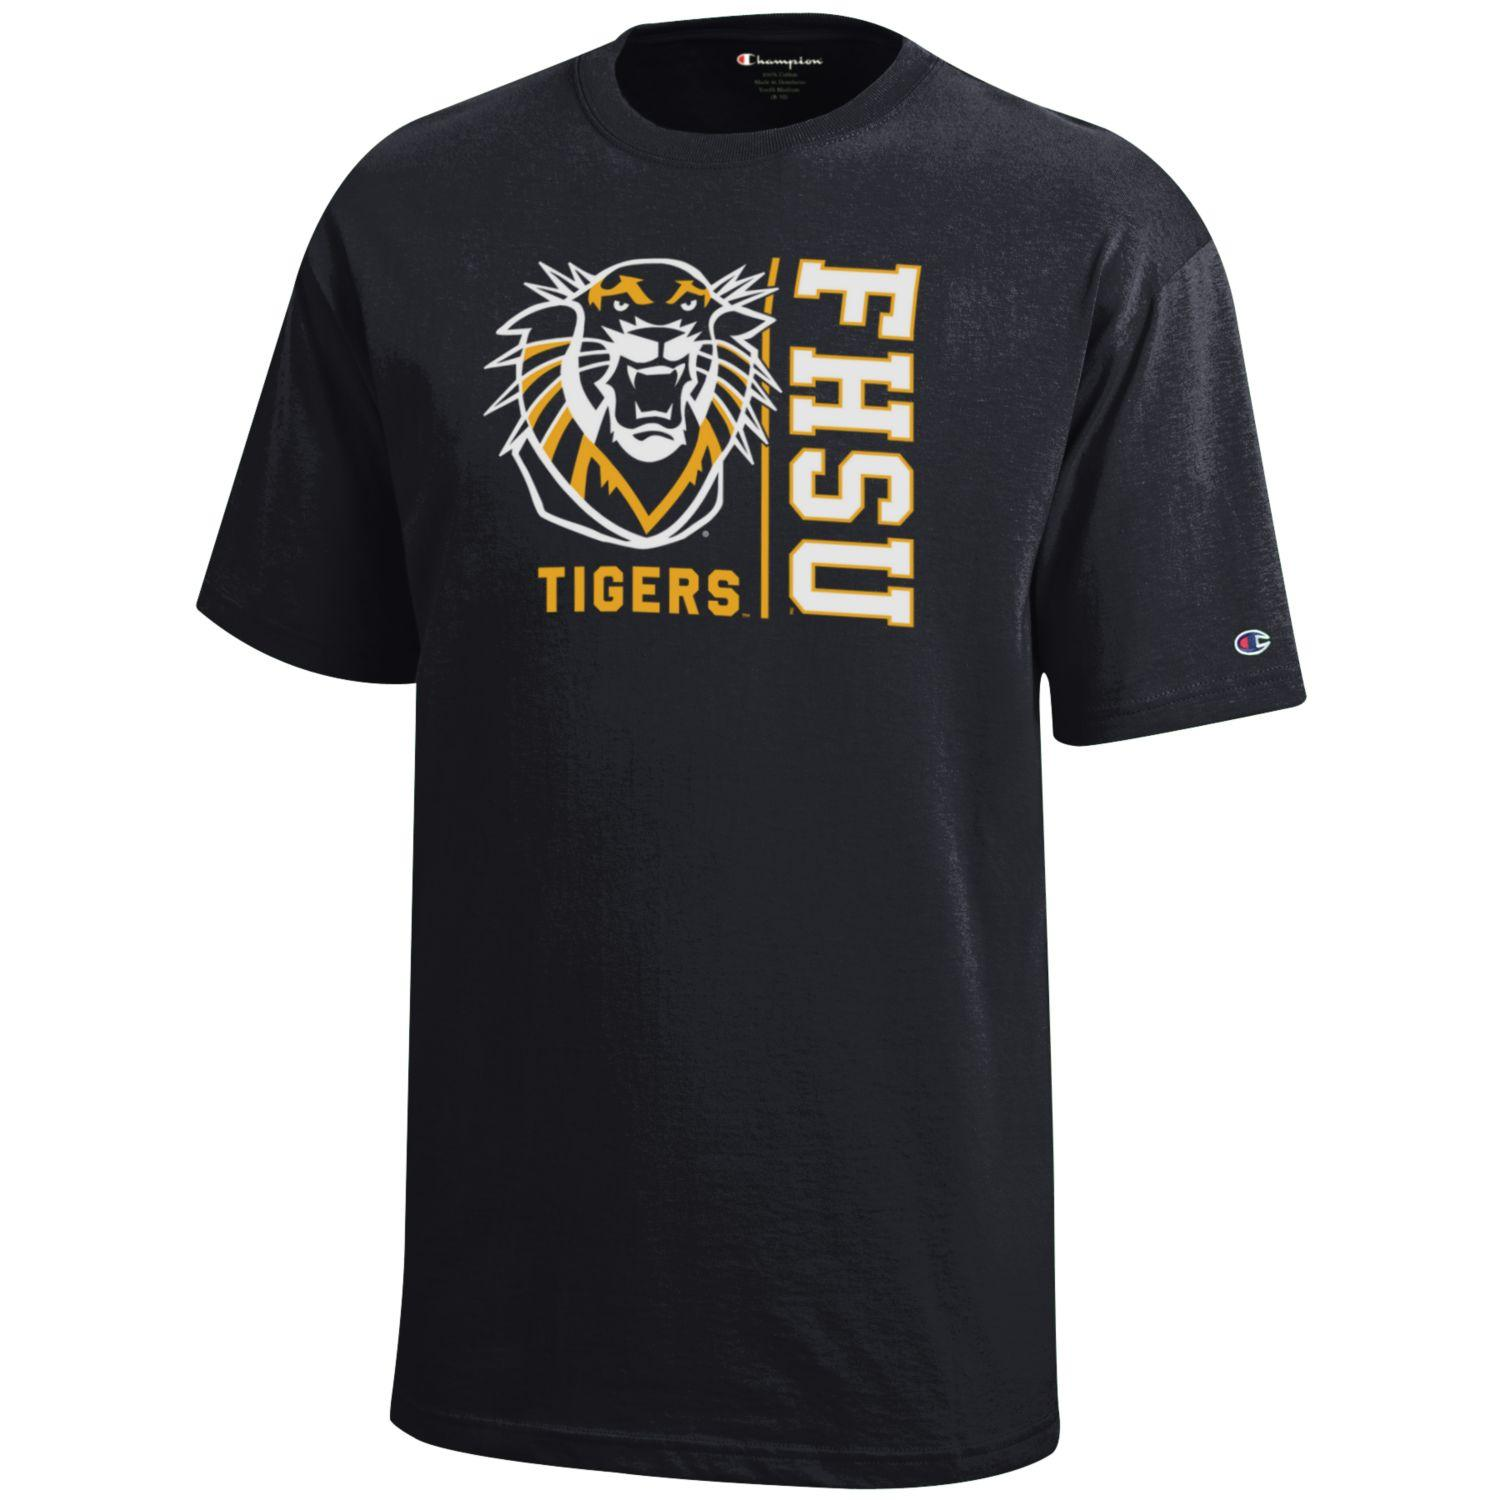 Image for the Youth T-Shirt Black FHSU Mascot Tigers product